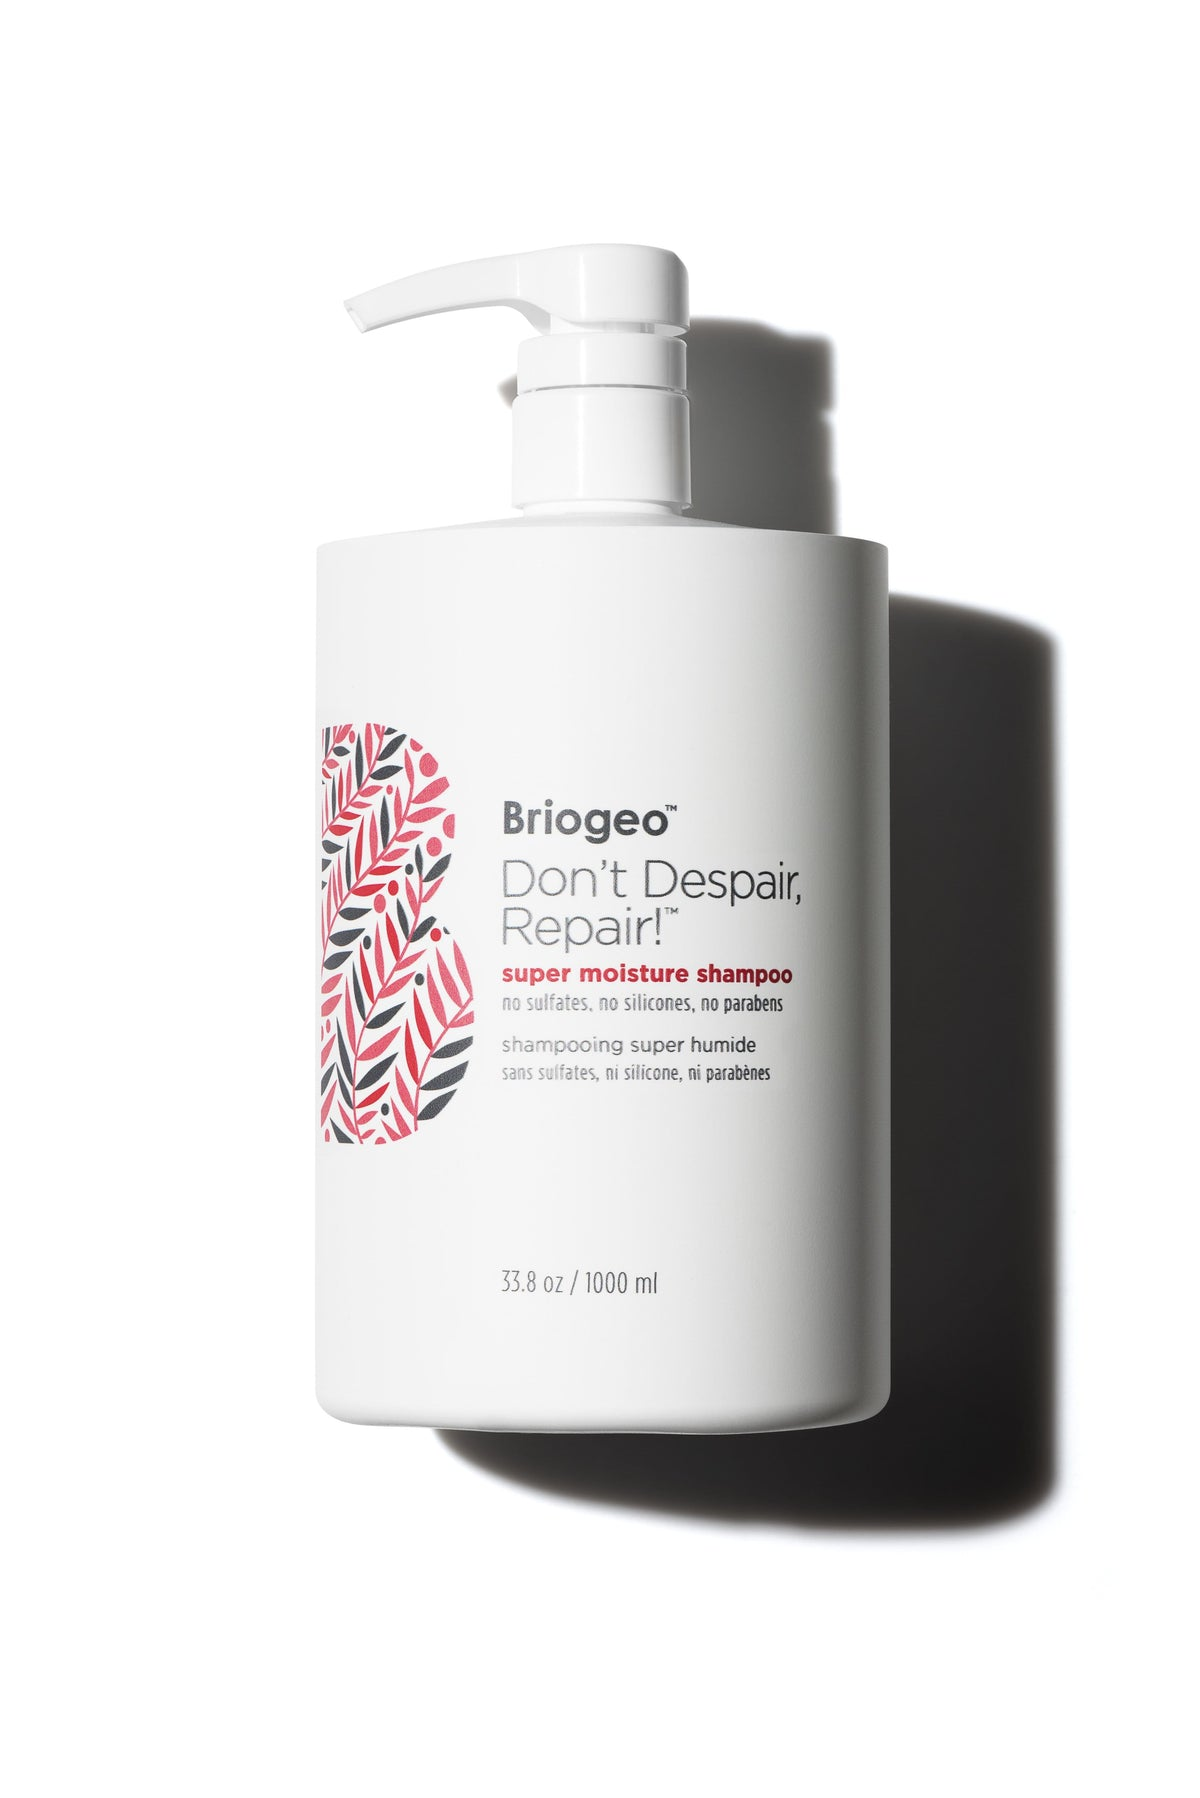 Don't Despair, Repair! Super Moisture Shampoo 33.8 oz